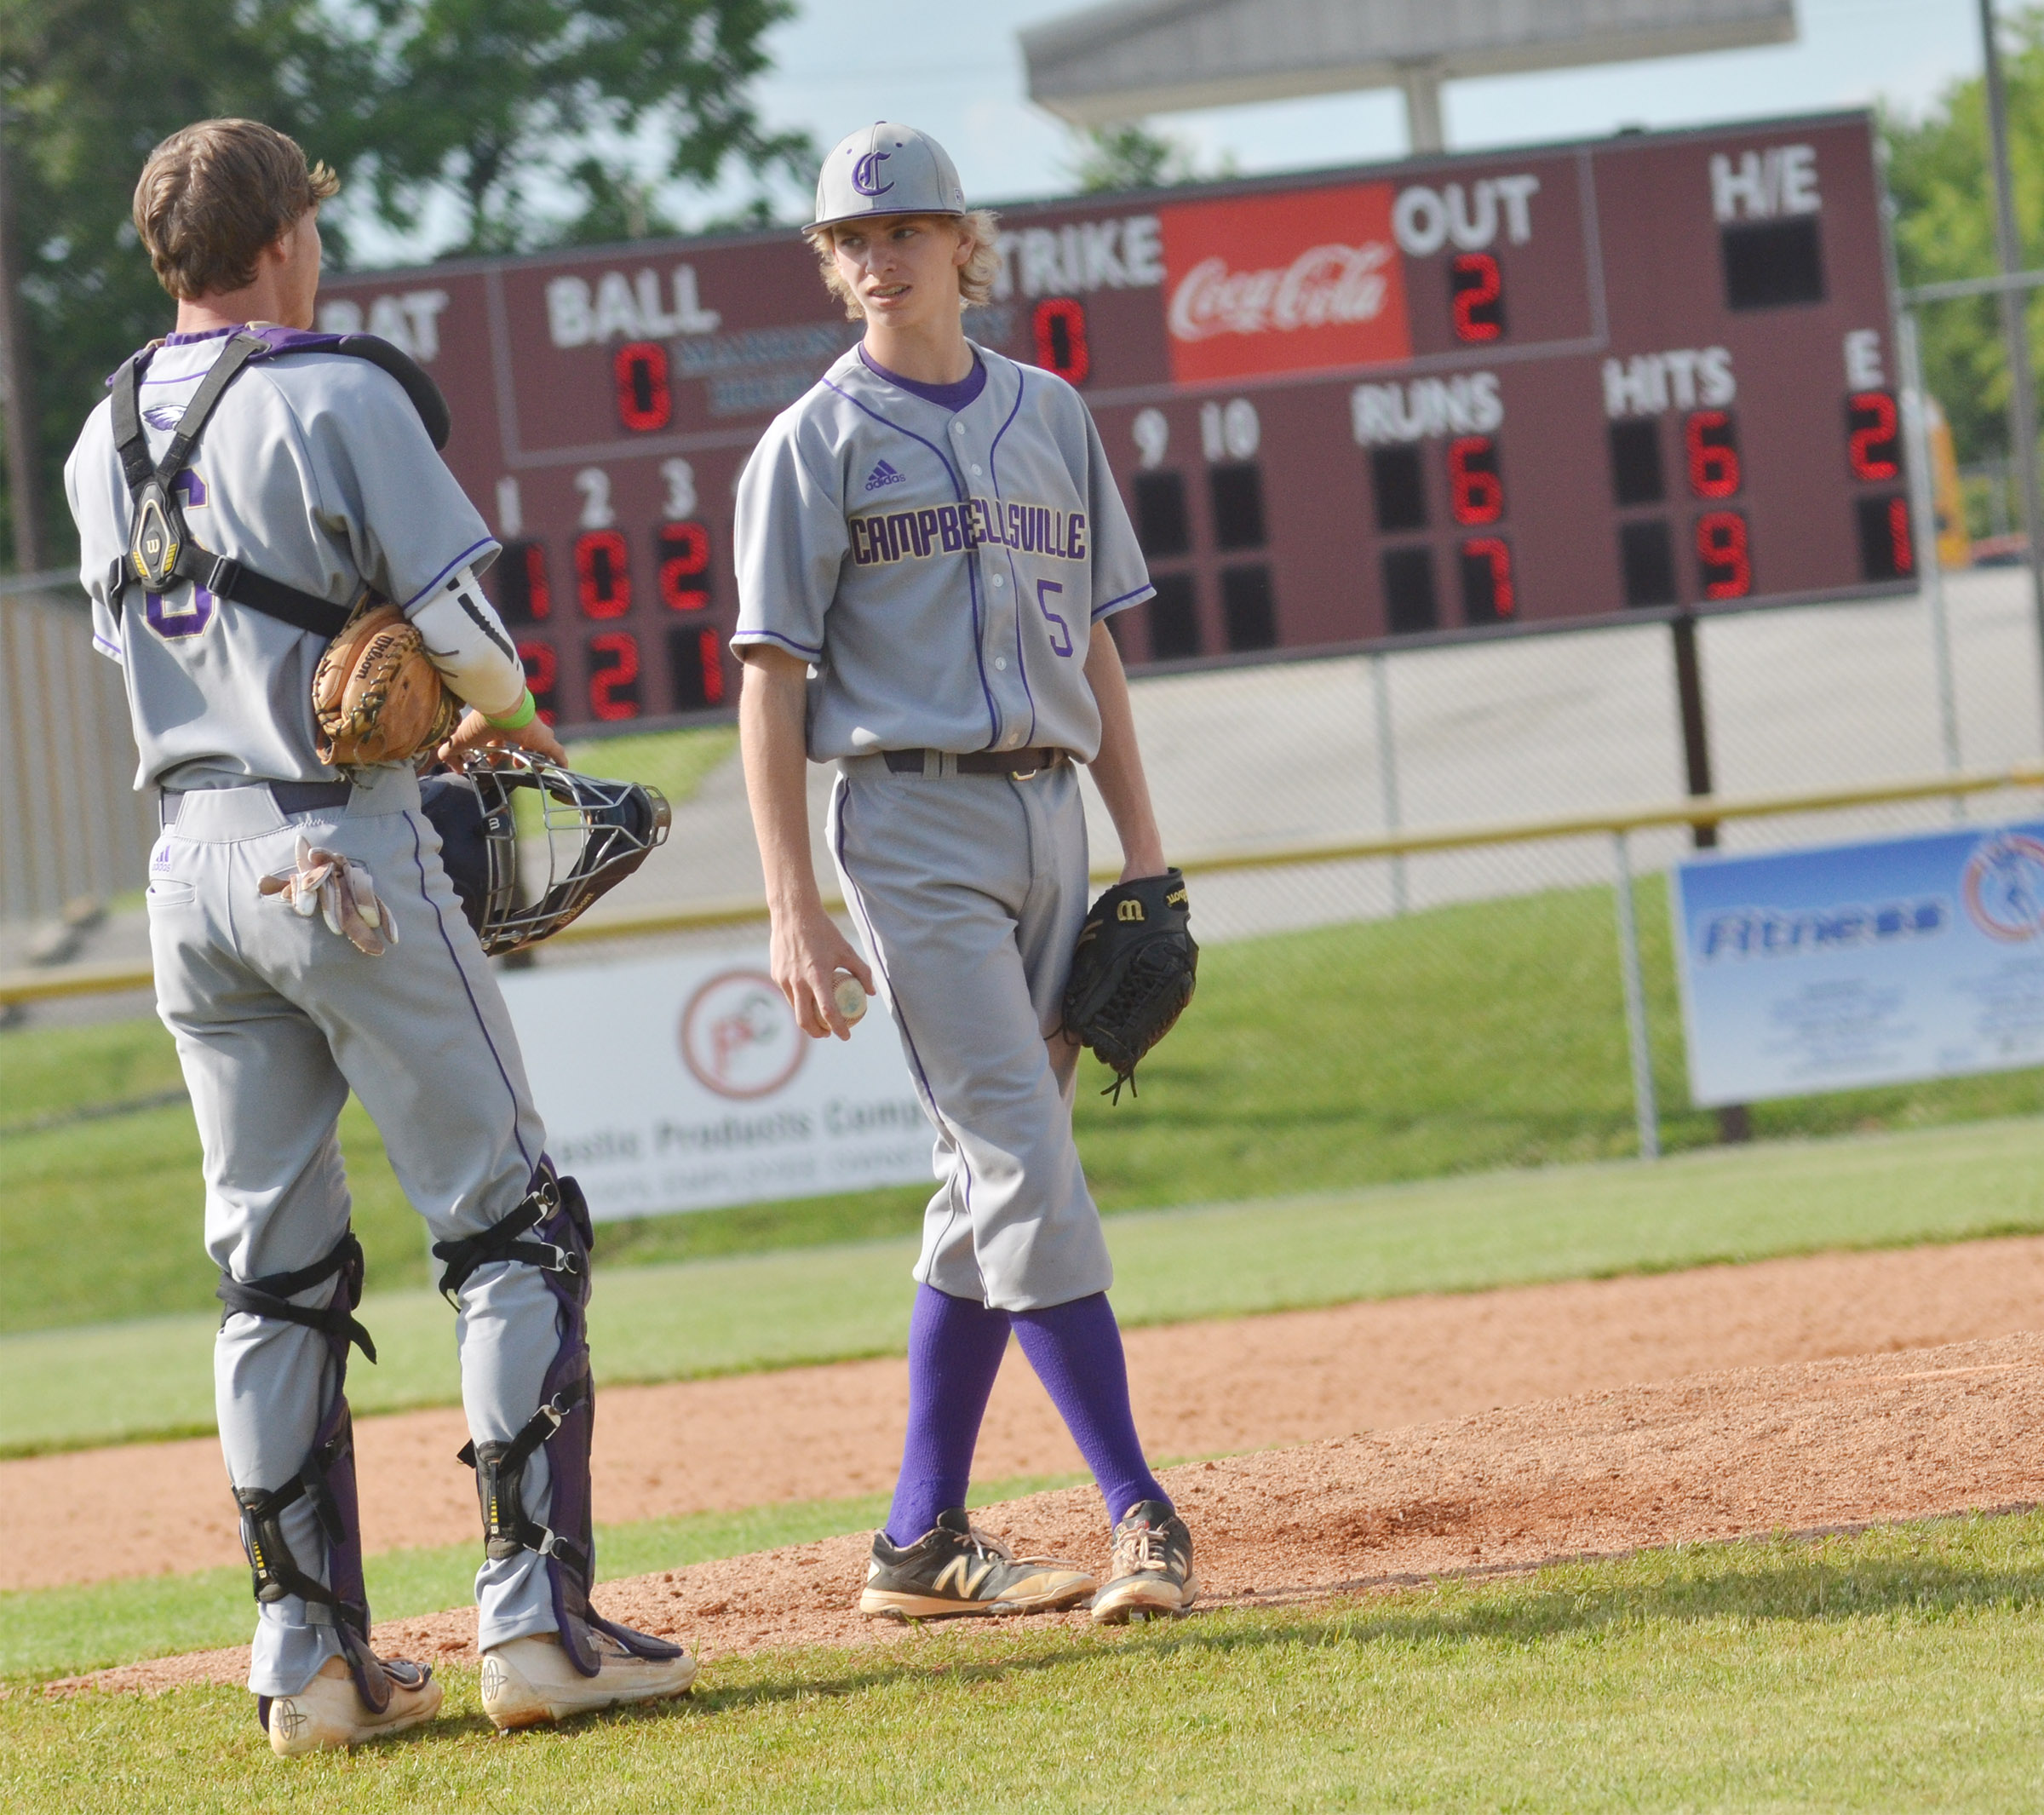 CHS senior Zack Bottoms talks to Campbellsville Middle School eighth-grader Arren Hash during an inning.